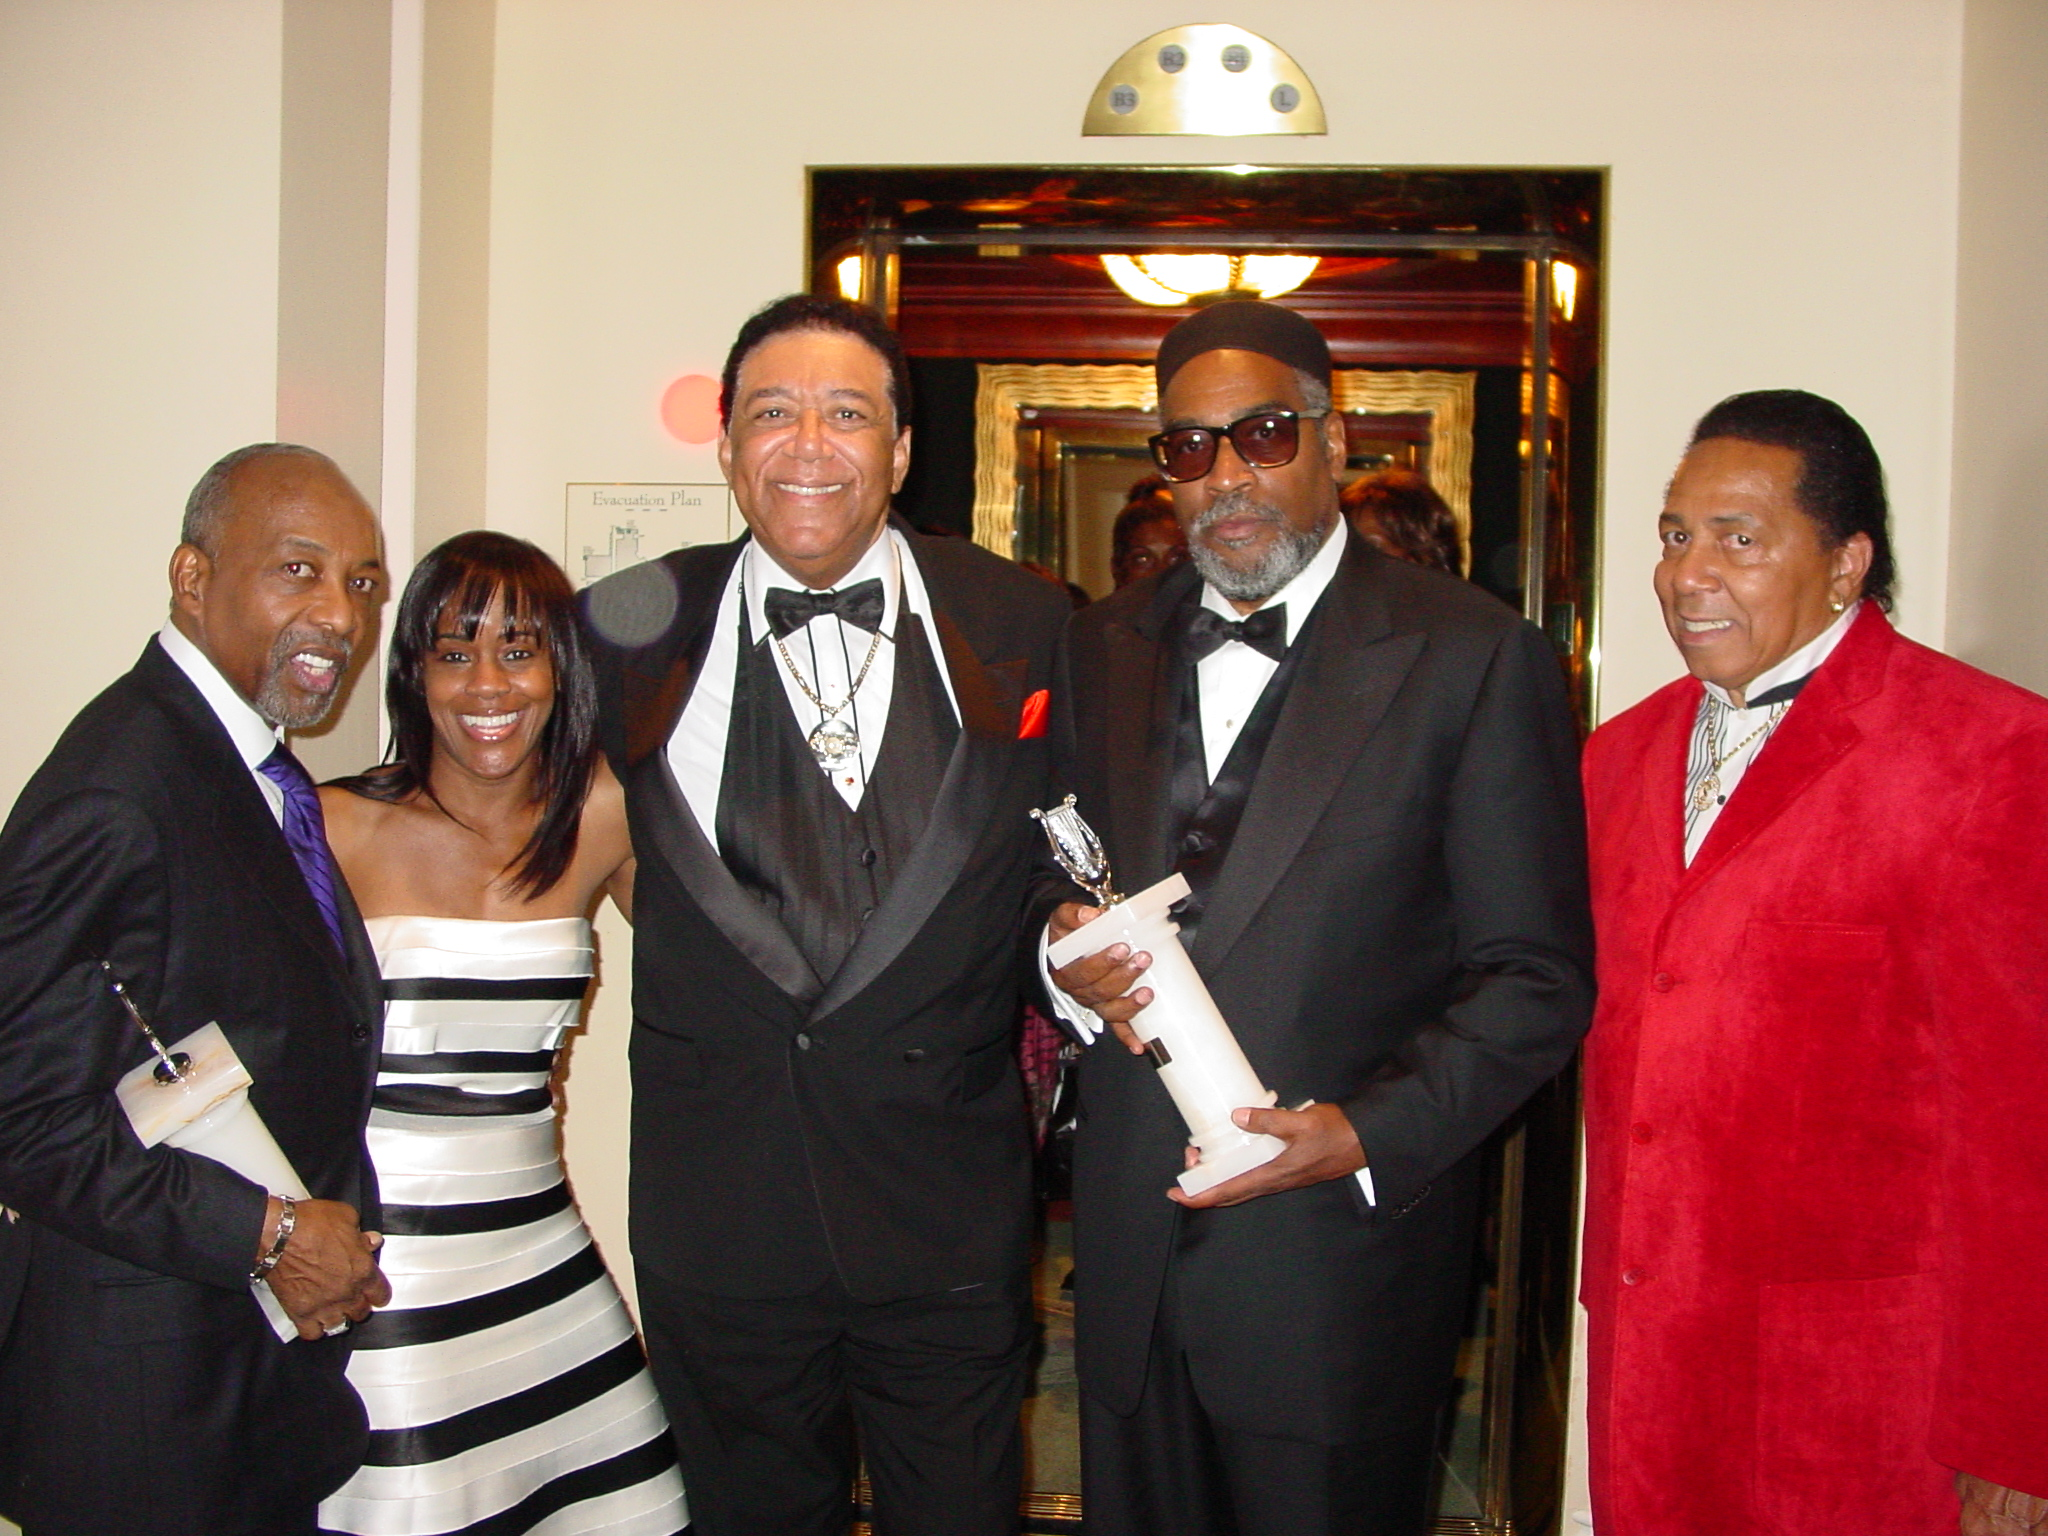 Leon Huff, Friend, Terry, Kenny Gamble, Bunny Seigler (Gamble & Huff, writing team and former owners of Philly International Records).